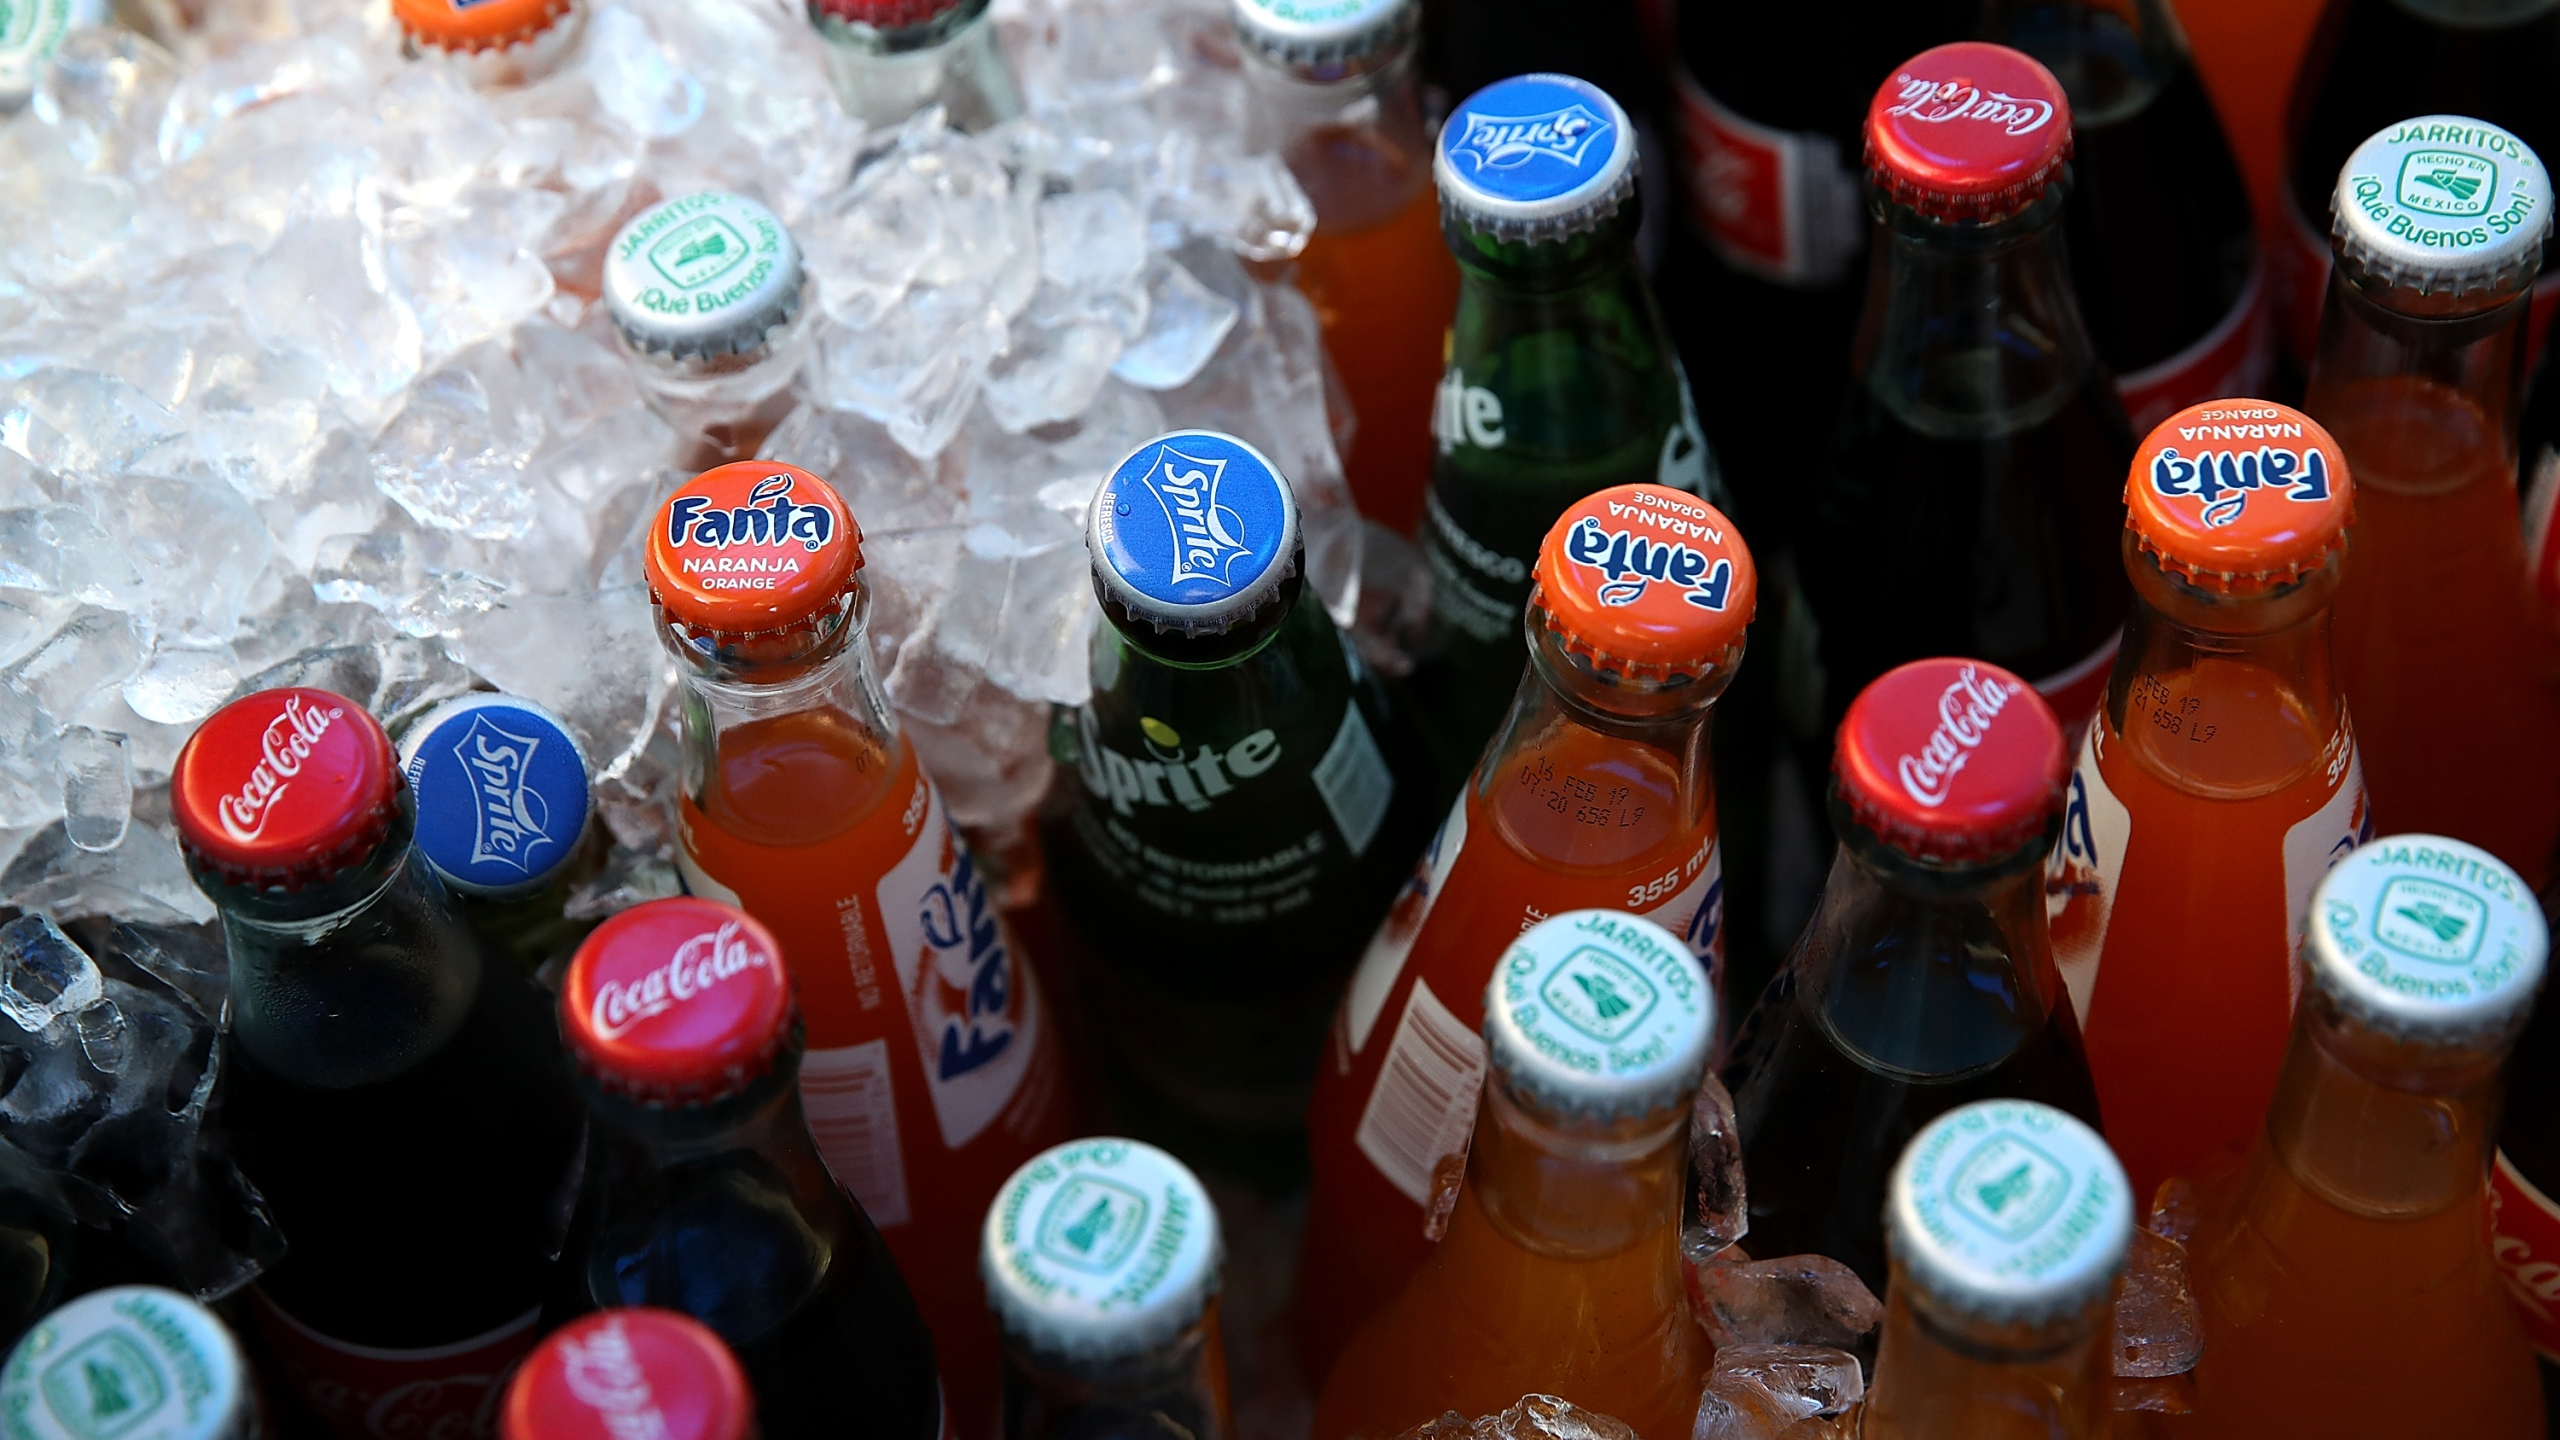 Bottles of soda are seen in a cooler on June 29, 2018, in San Francisco. (Credit: Justin Sullivan/Getty Images)